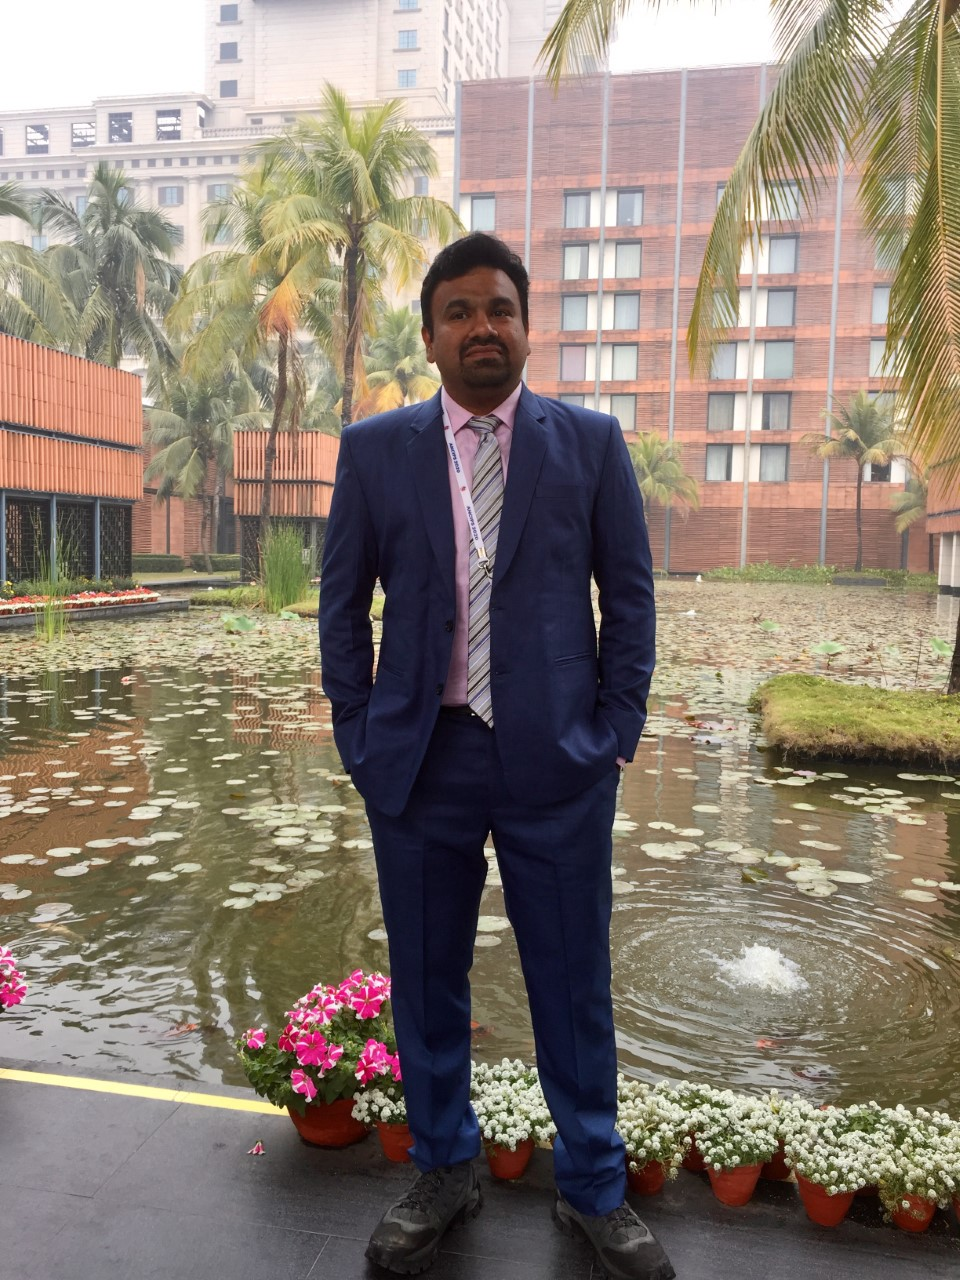 Dr. Sharad in a dark bule suit standing in front of a pool